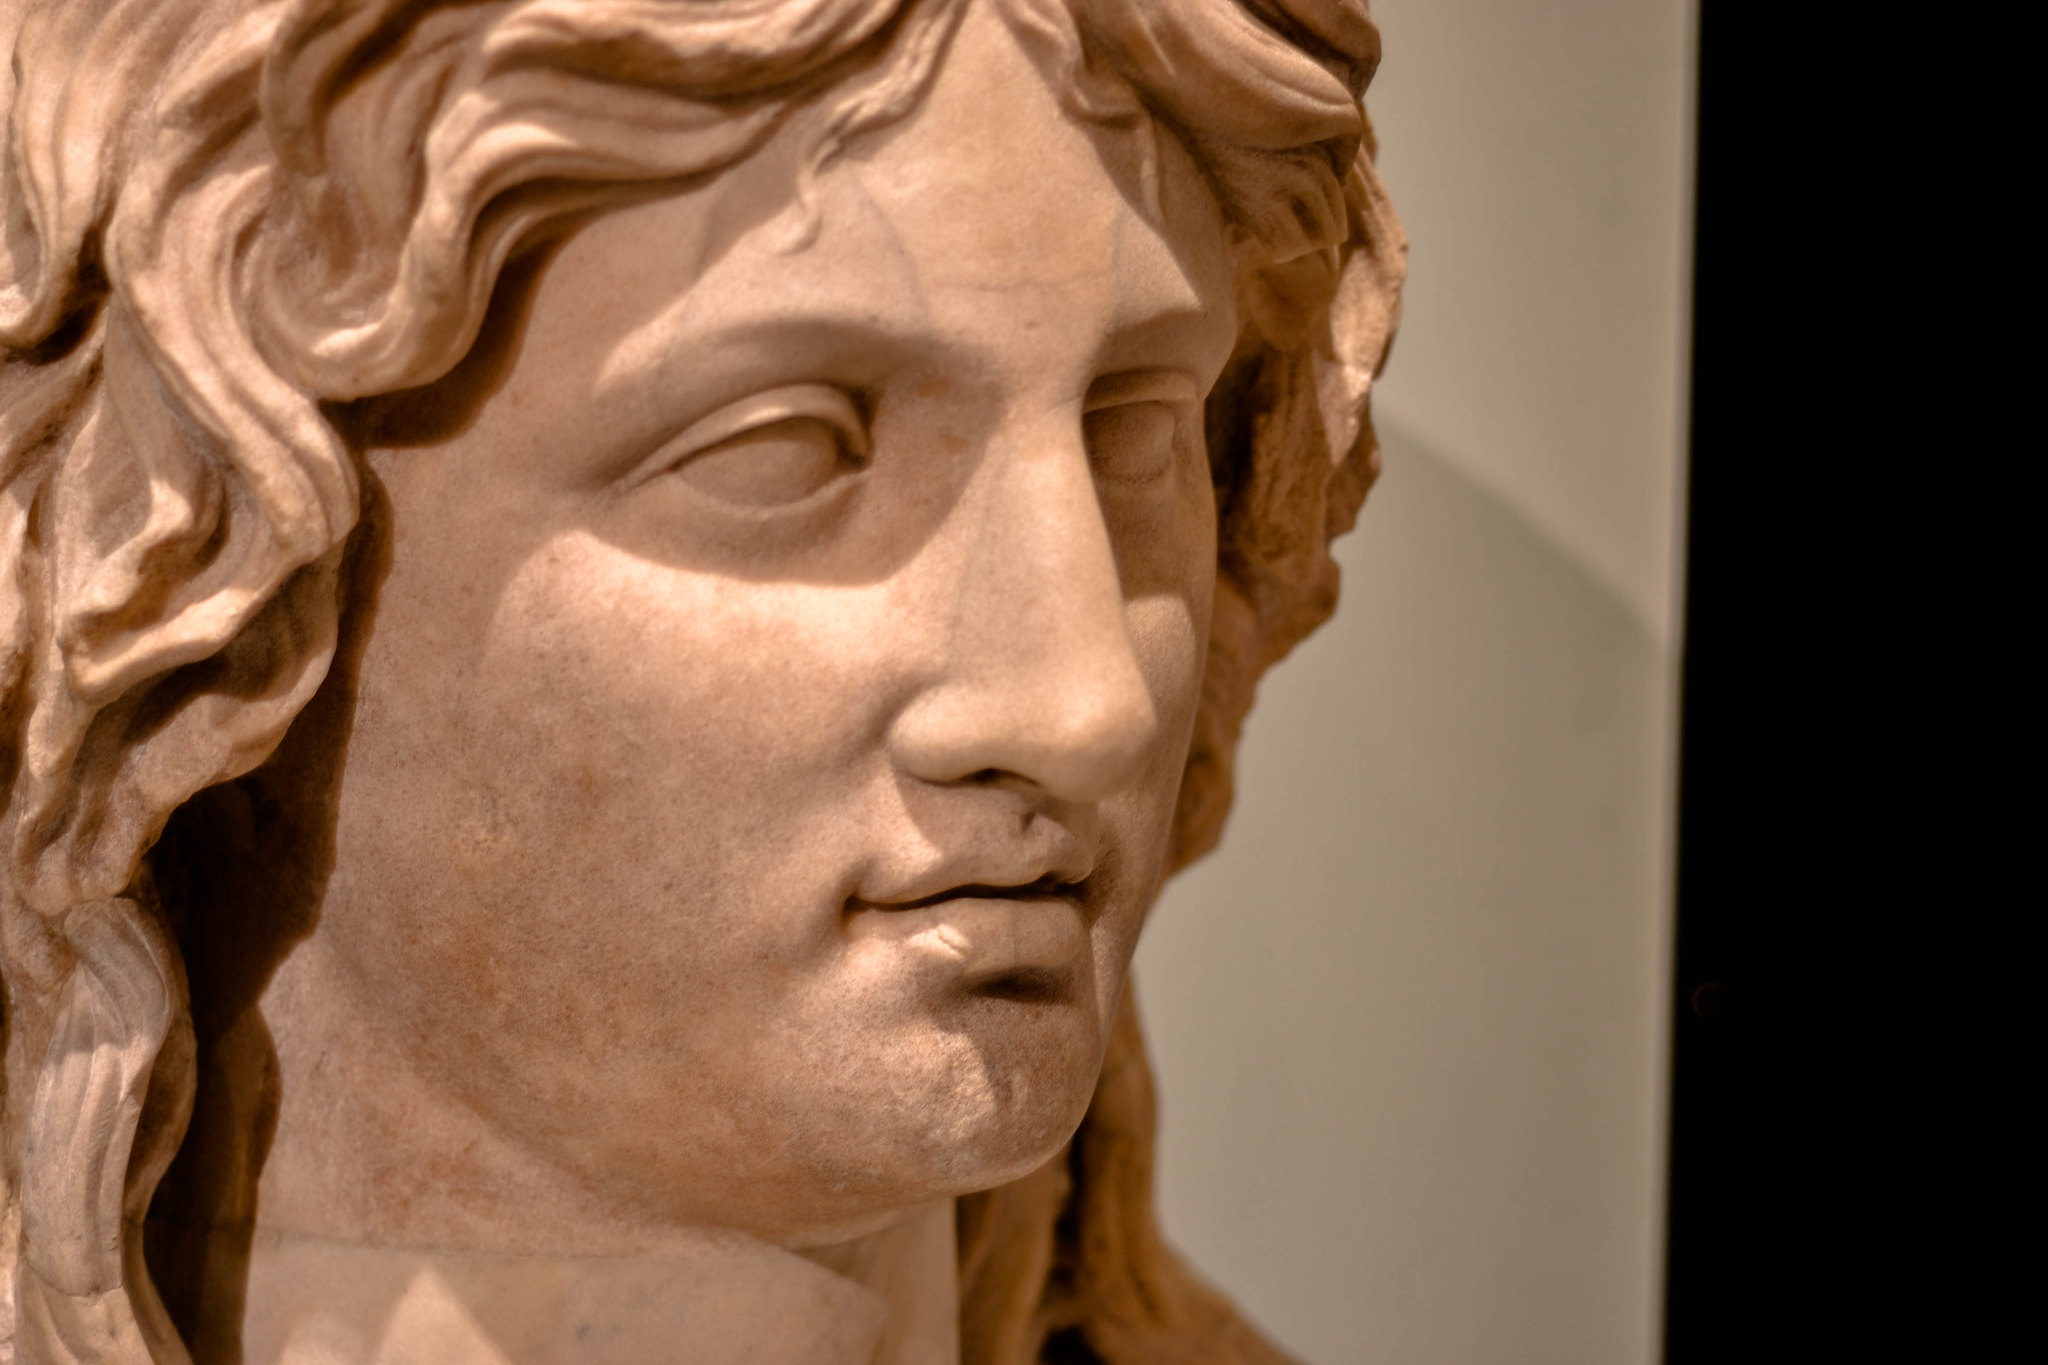 Marble head of a Barbarian woman AD 100s